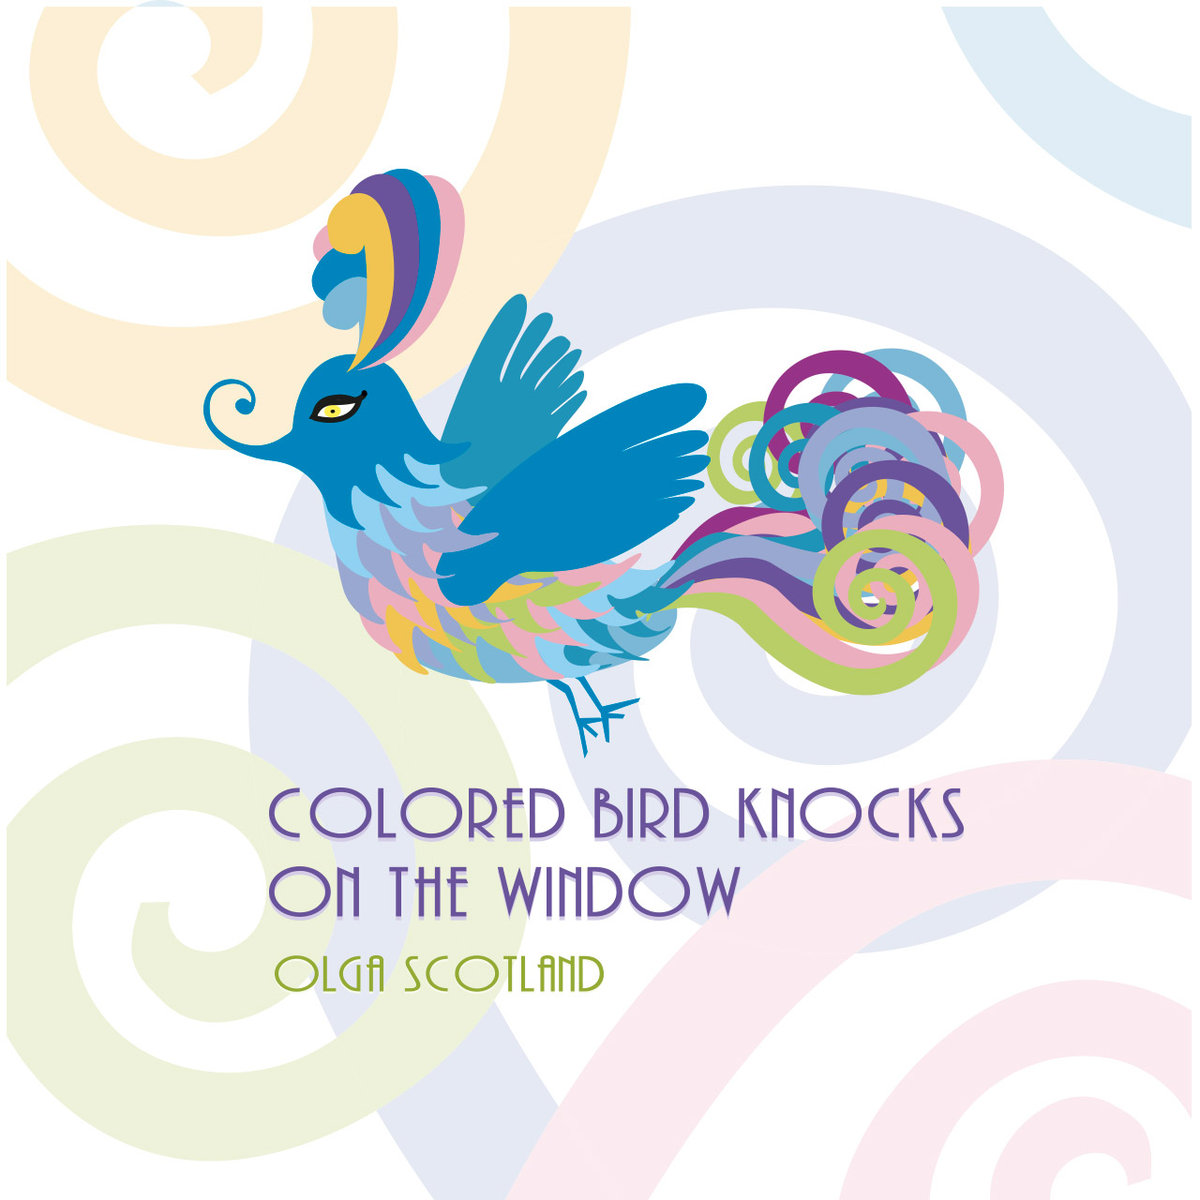 Olga Scotland - Winter @ 'Colored Bird Knocks On The Window' album (soundtrack, ambient)